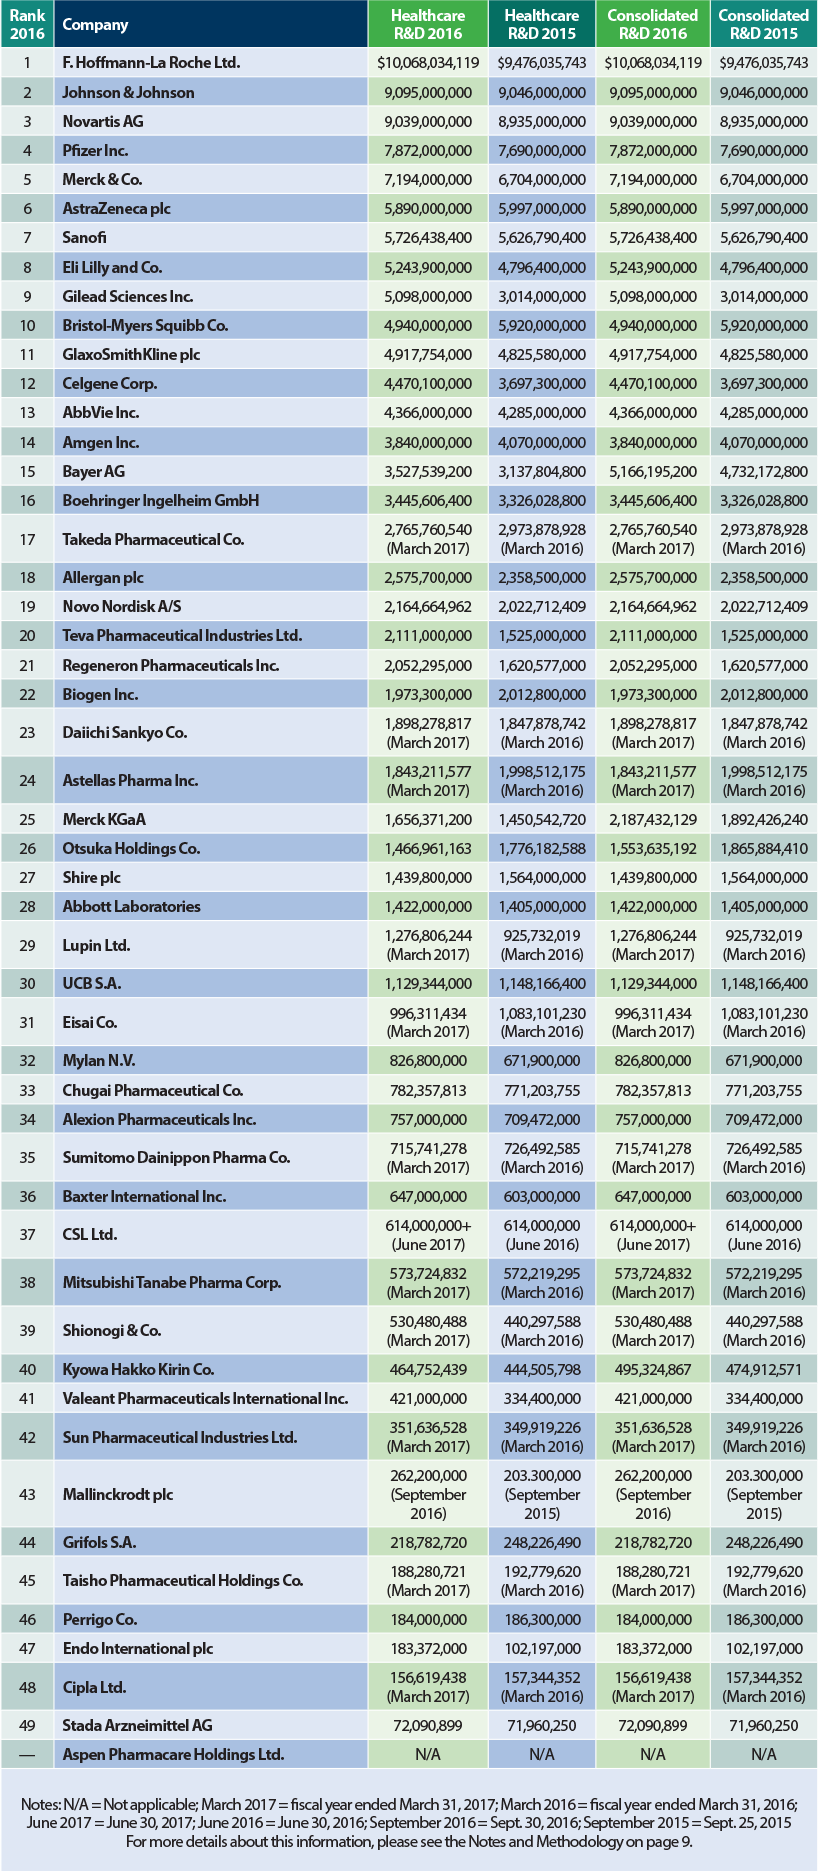 Med Ad News - October 2017 - Most Profitable Companies